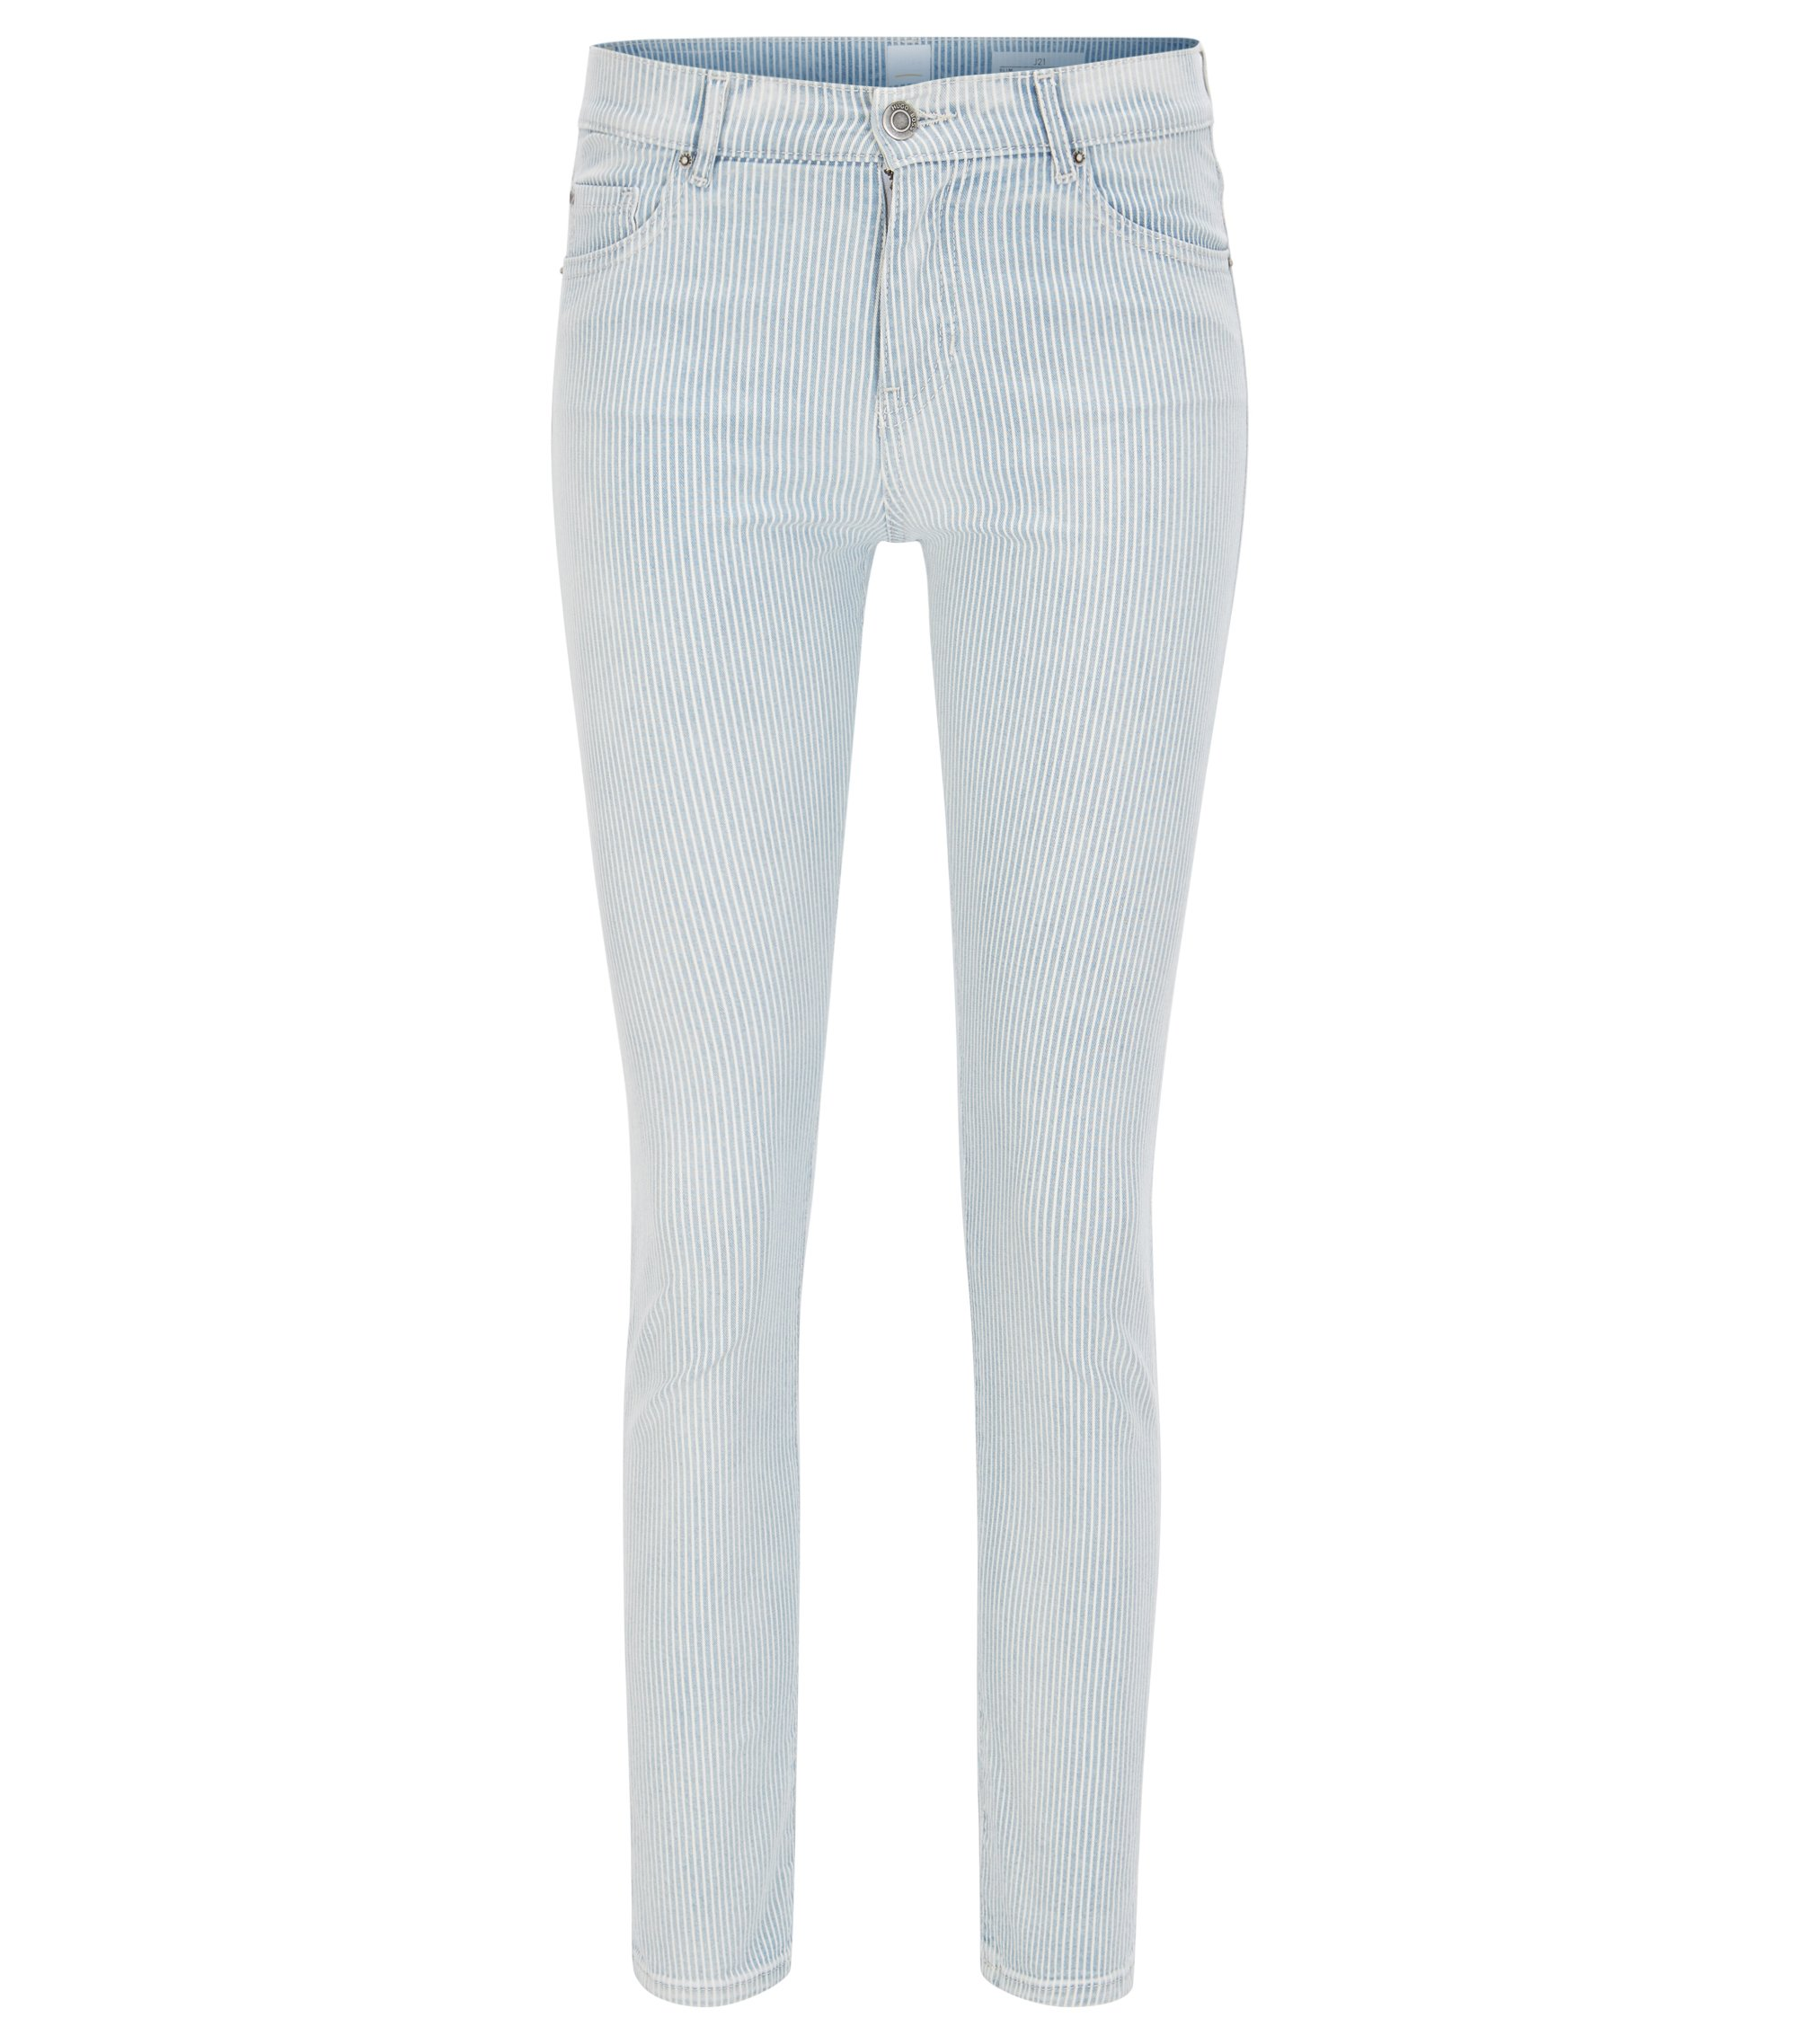 Slim-fit cropped jeans in comfort-stretch denim, Light Blue